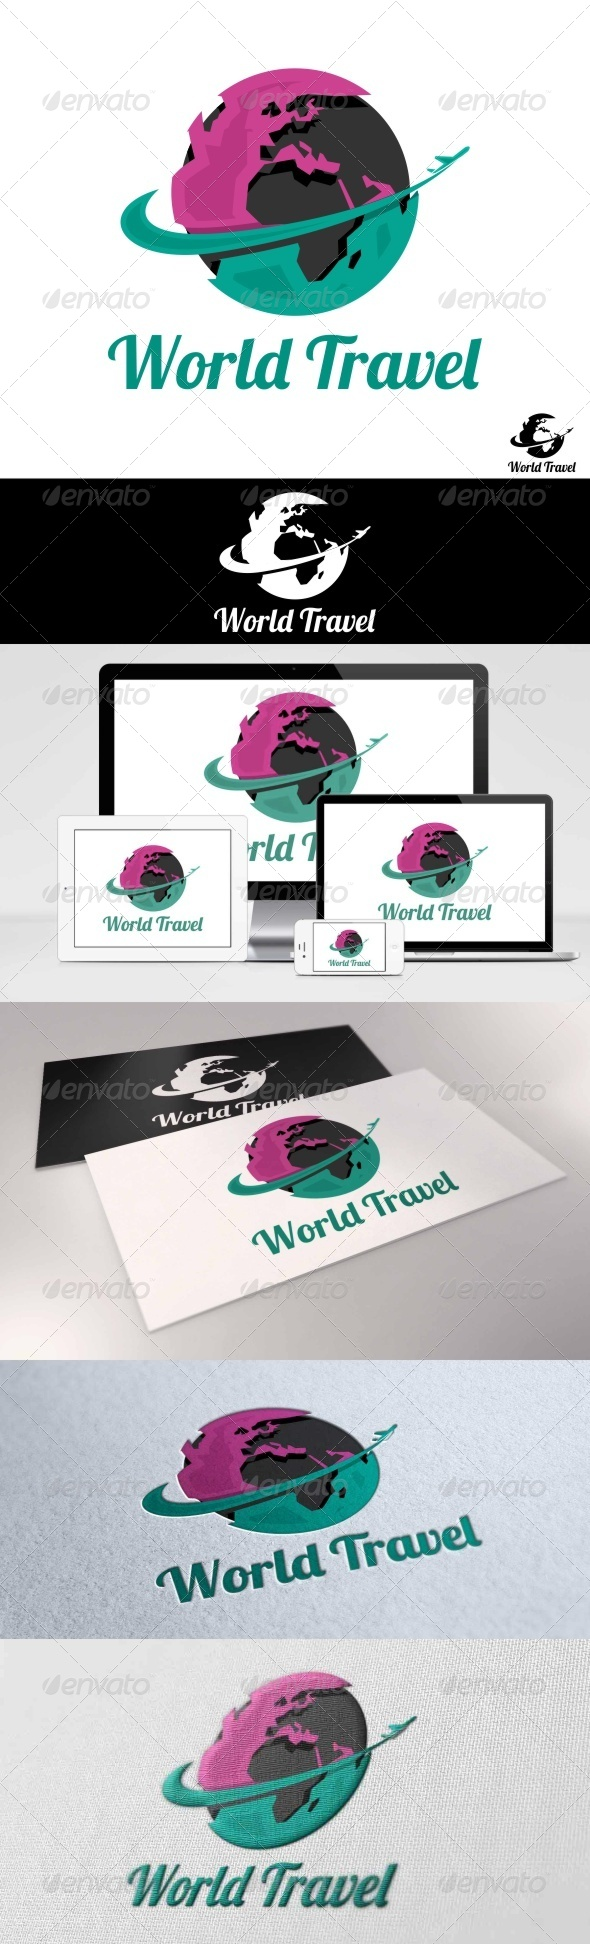 GraphicRiver World Travel Logo 7765910